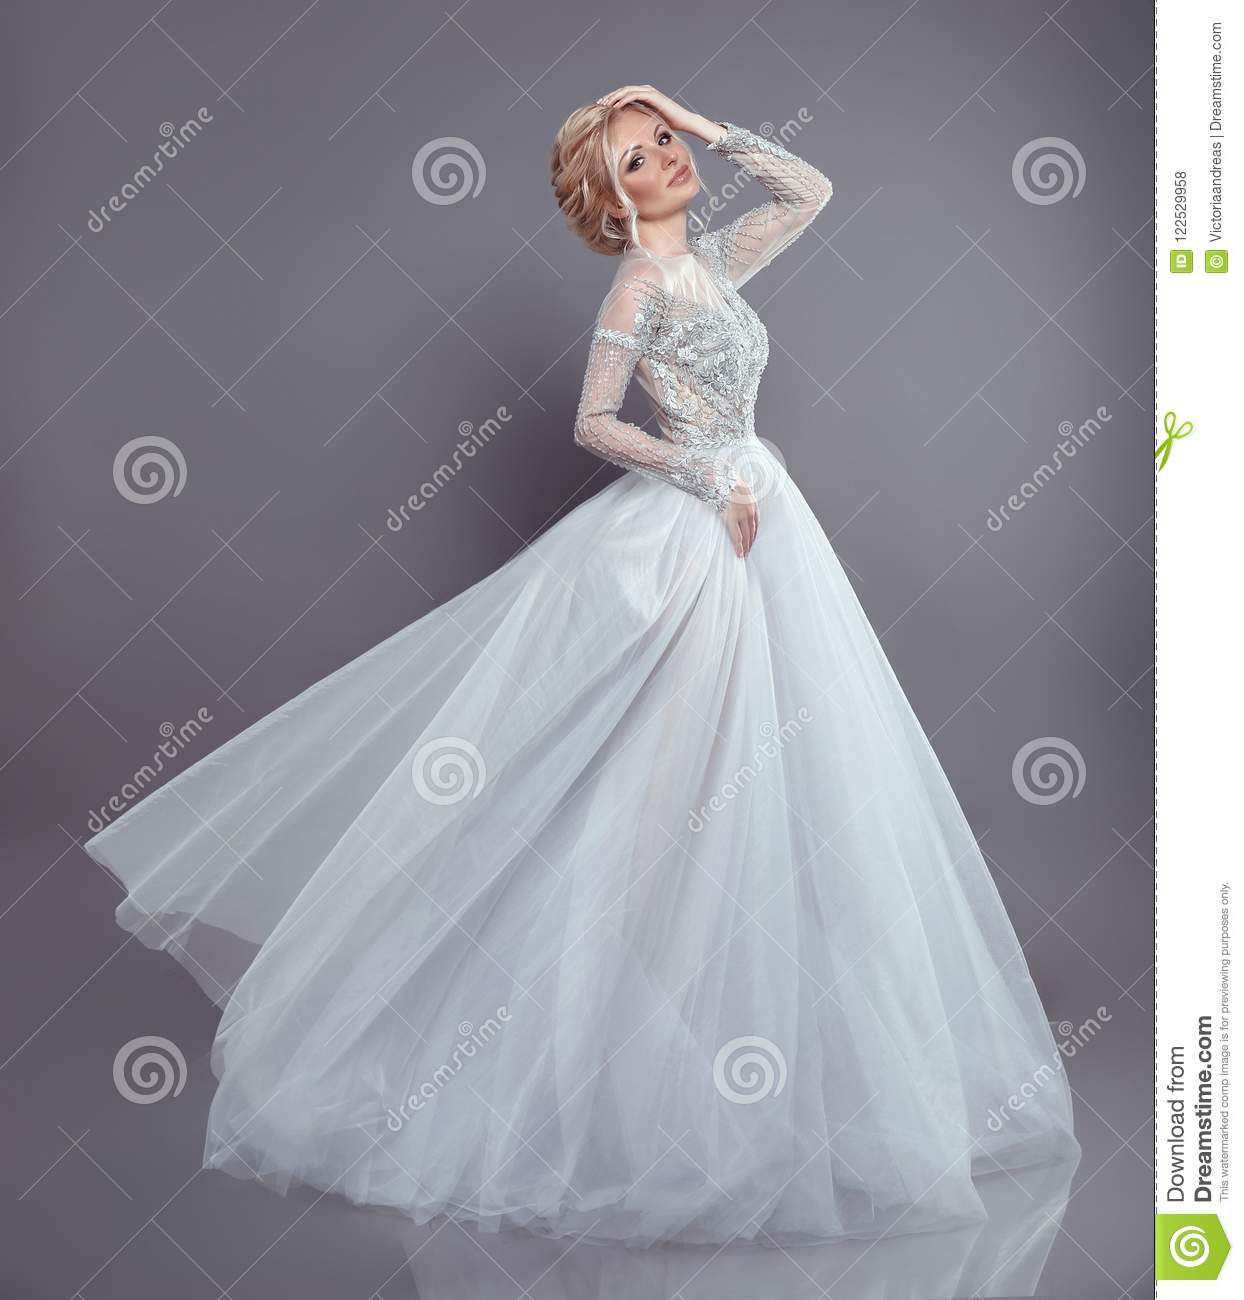 Beautiful bride in wedding flowing chiffon dress, Woman in long